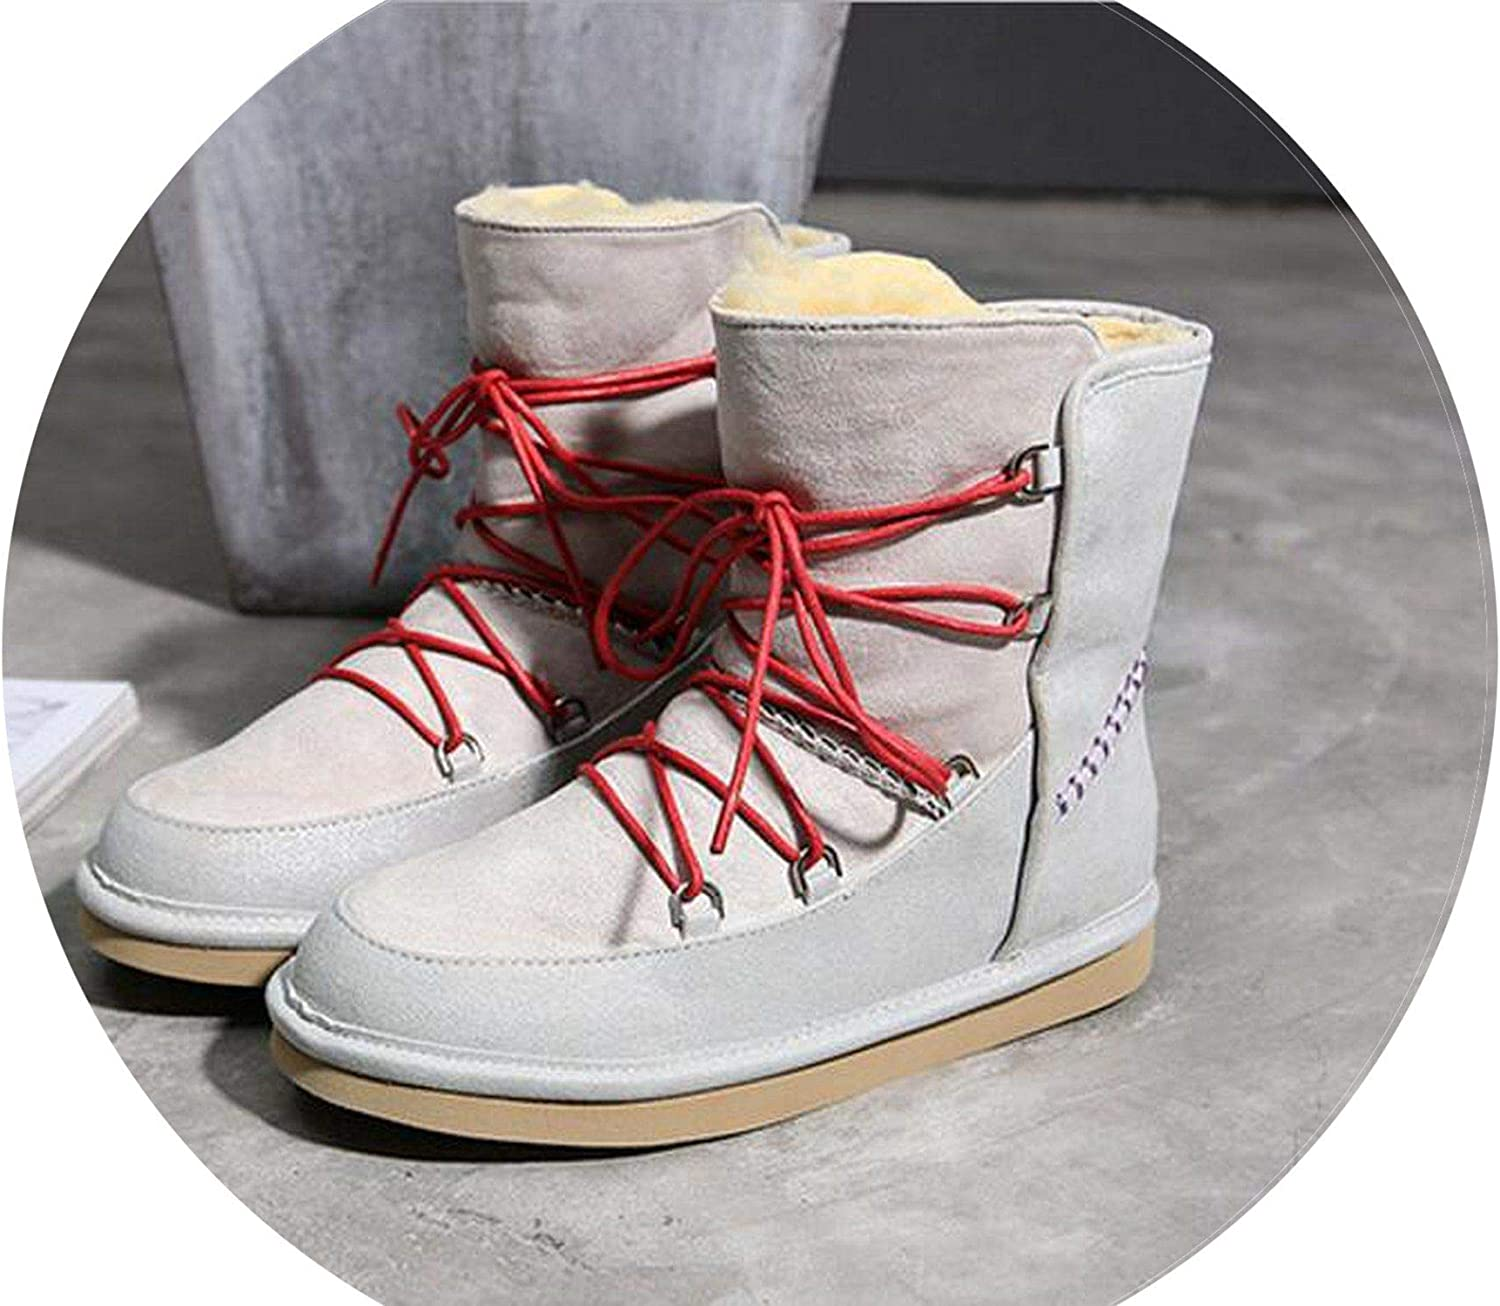 Summer-lavender Women Winter Boots Genuine Leather Snow Boots Ankle Boots Warm Fur shoes Woman Flats Round Toe Boots